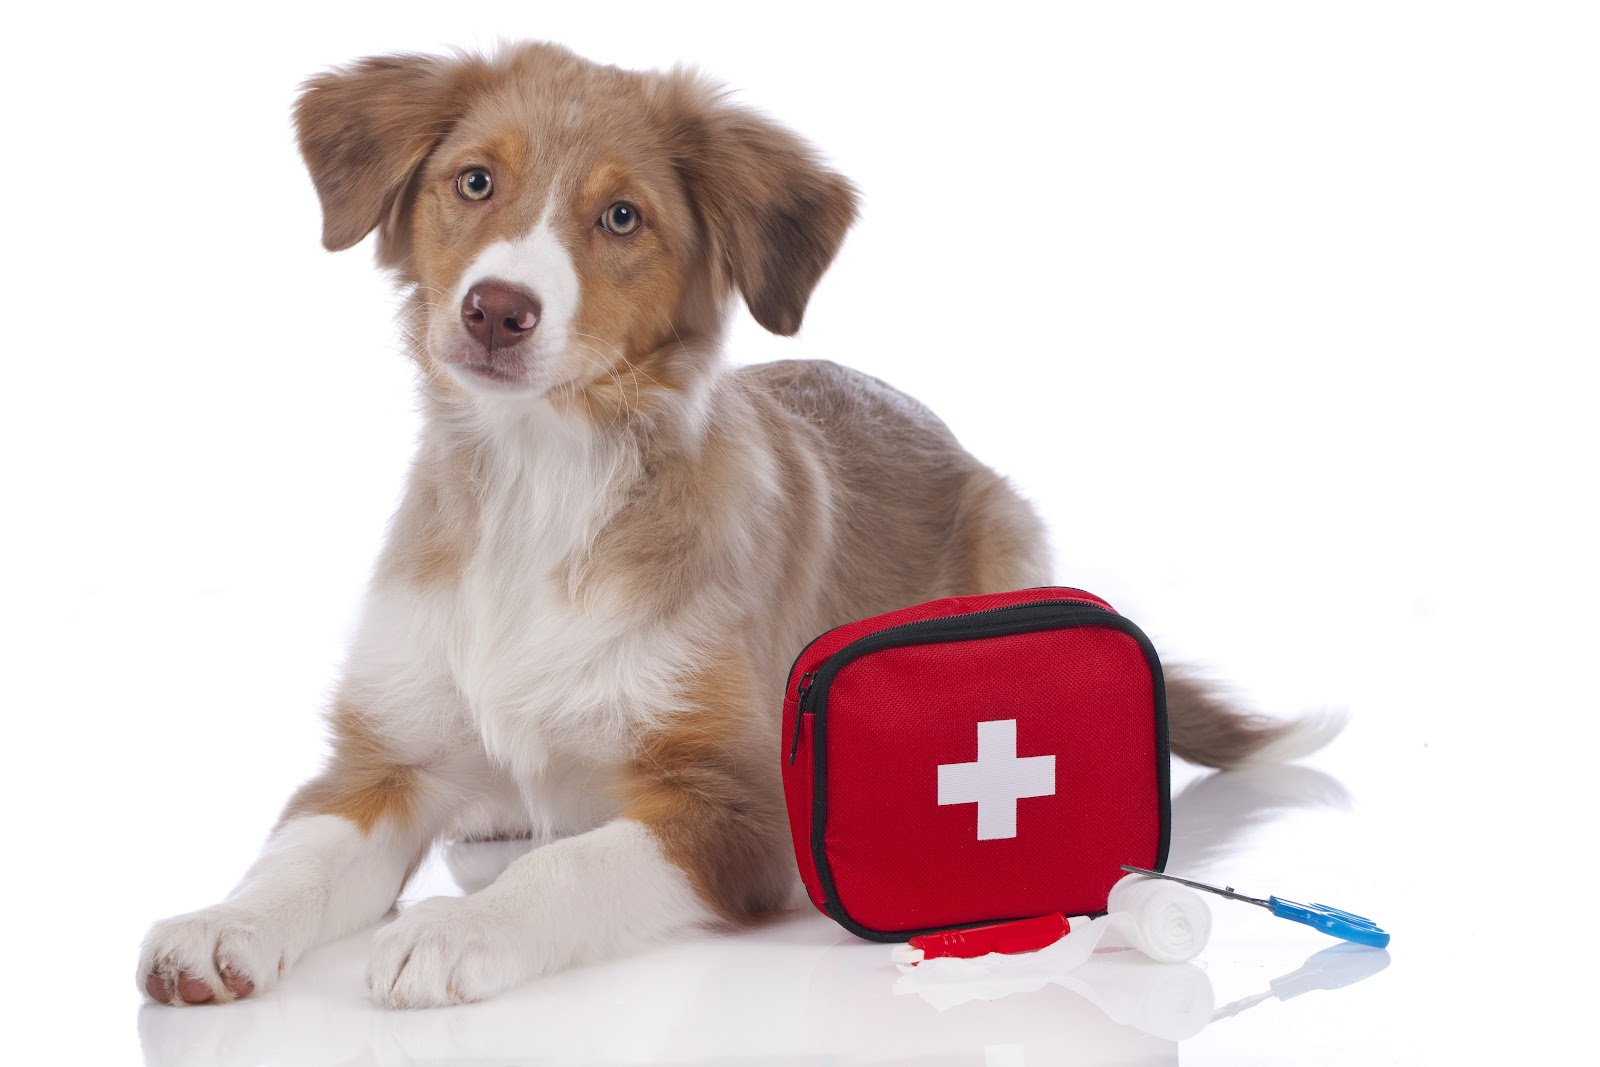 A young Australian Shepard  laying down with a red first aid kit next to the dog.